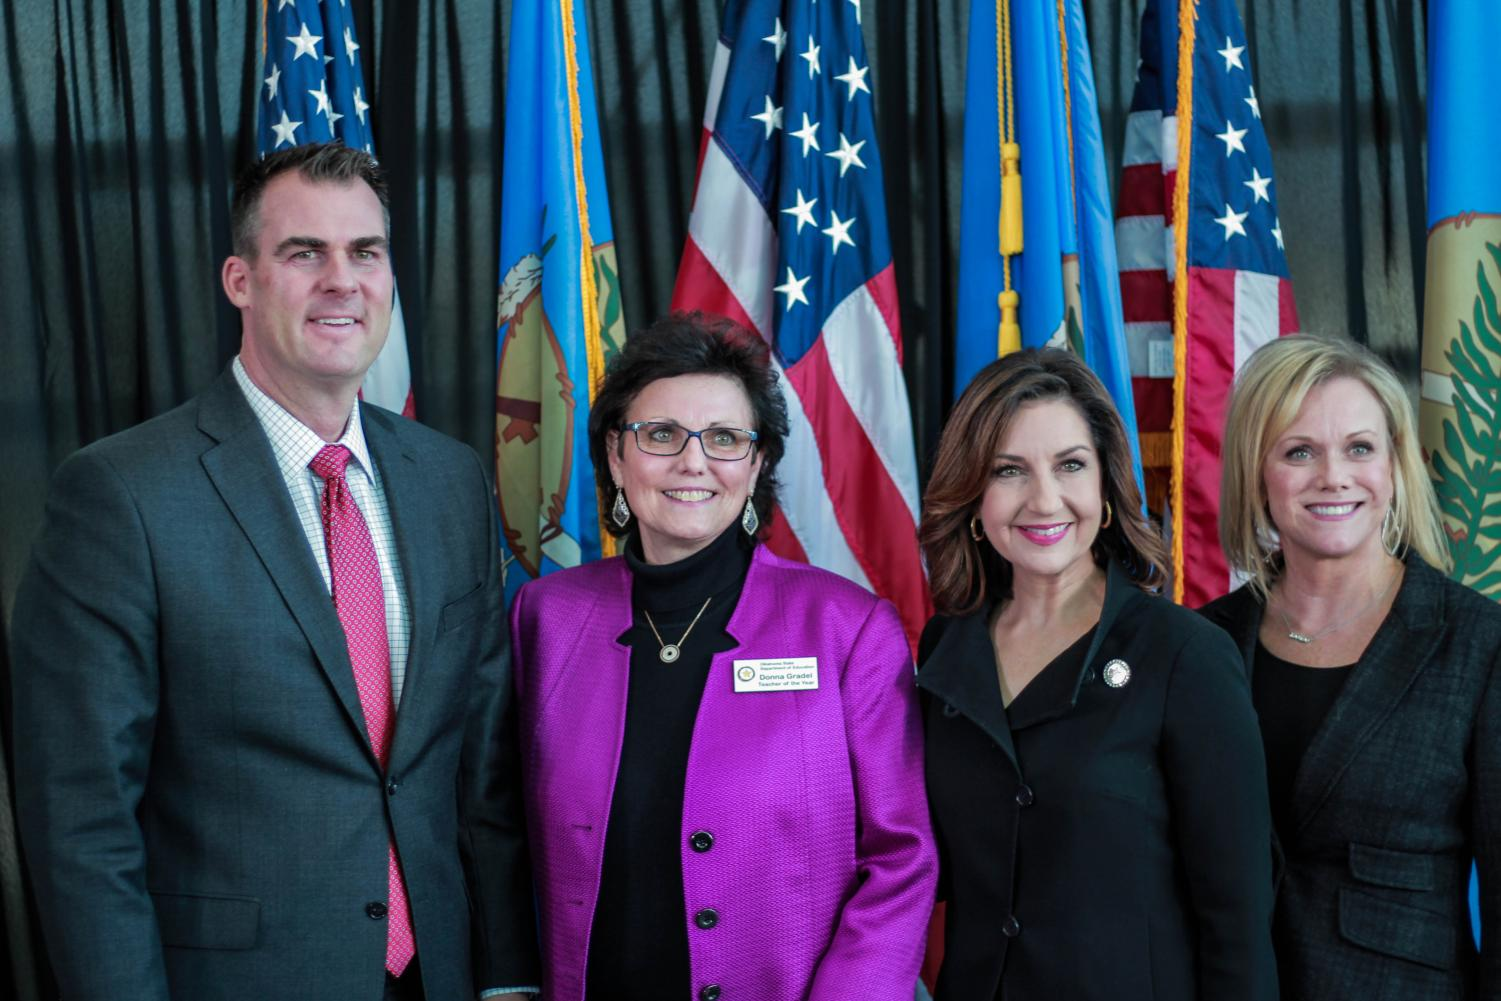 Governor Stitt poses with BA Teacher of the Year Donna Gradel, Oklahoma's State Superintendent of Public Instruction Joy Hofmeister, and Superintendent of Broken Arrow Schools Janet Dunlop.